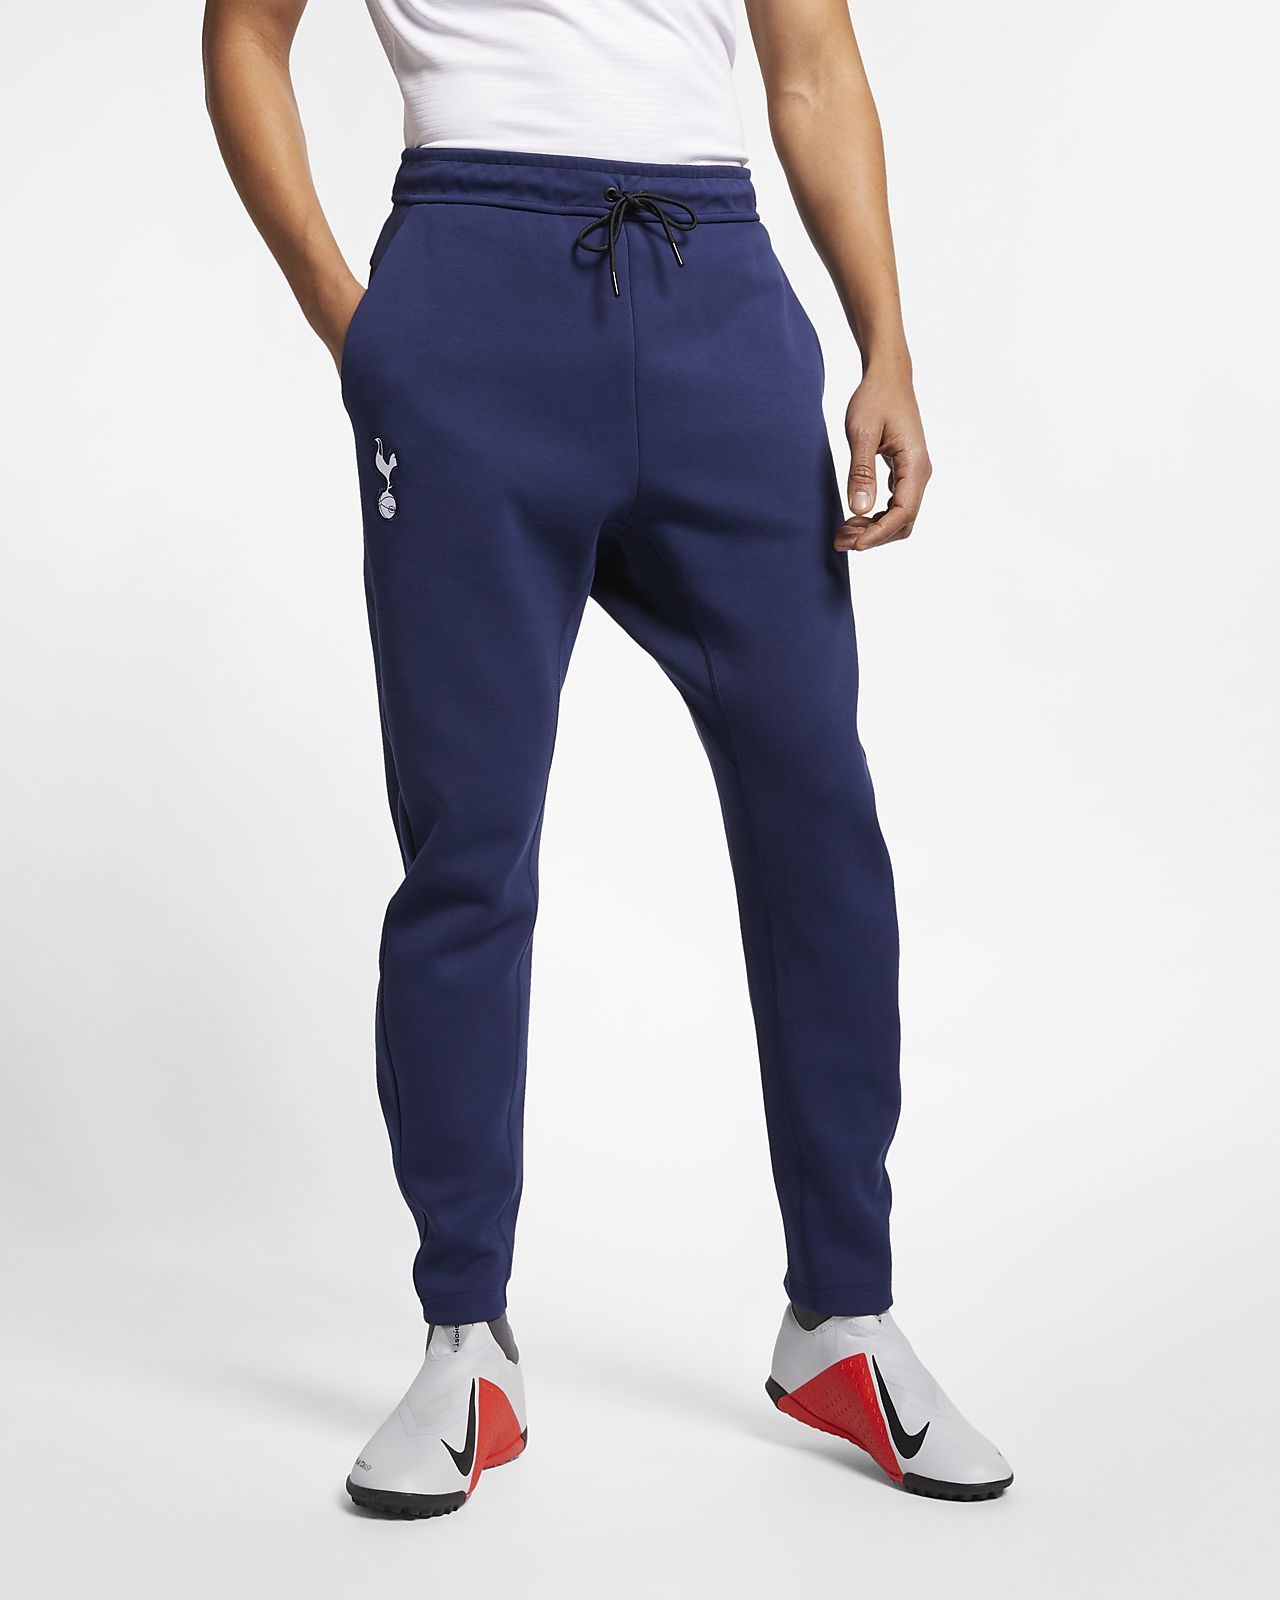 Tottenham Hotspur Tech Fleece Men's Pants